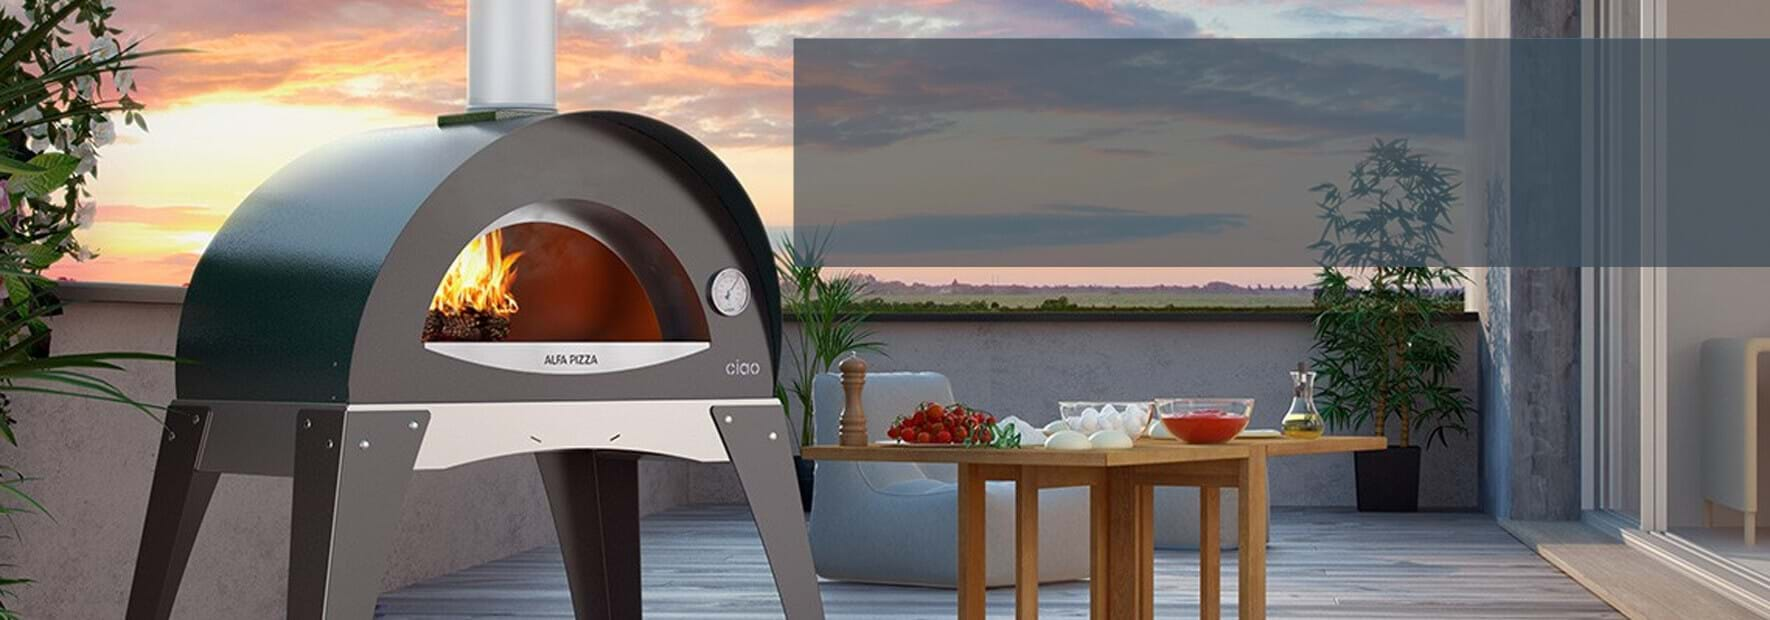 A Guide To Our Outdoor Ovens